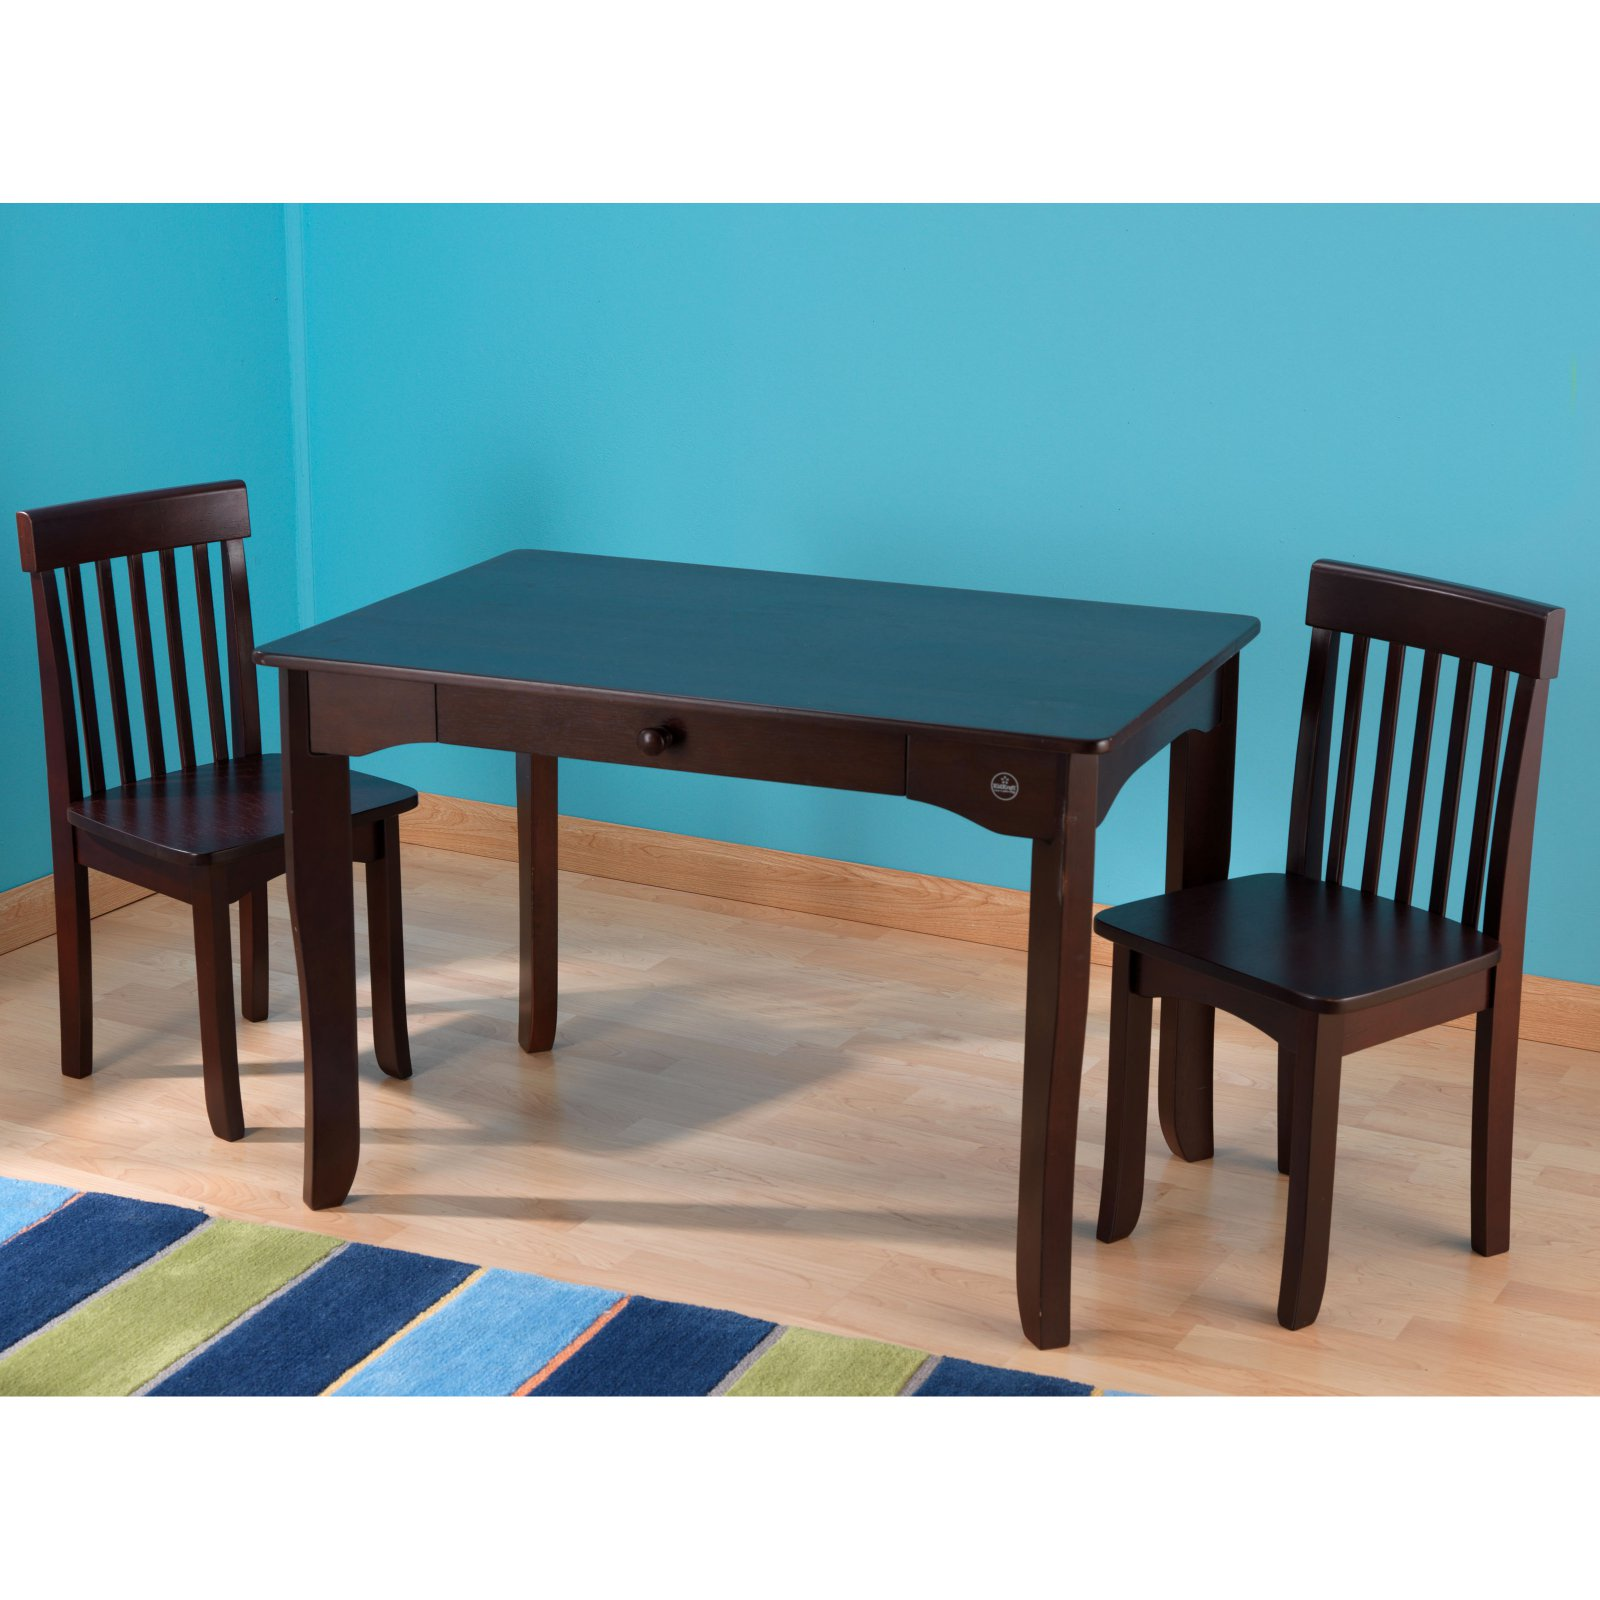 KidKraft Avalon Table and 2 Chair Set - Walmart.com